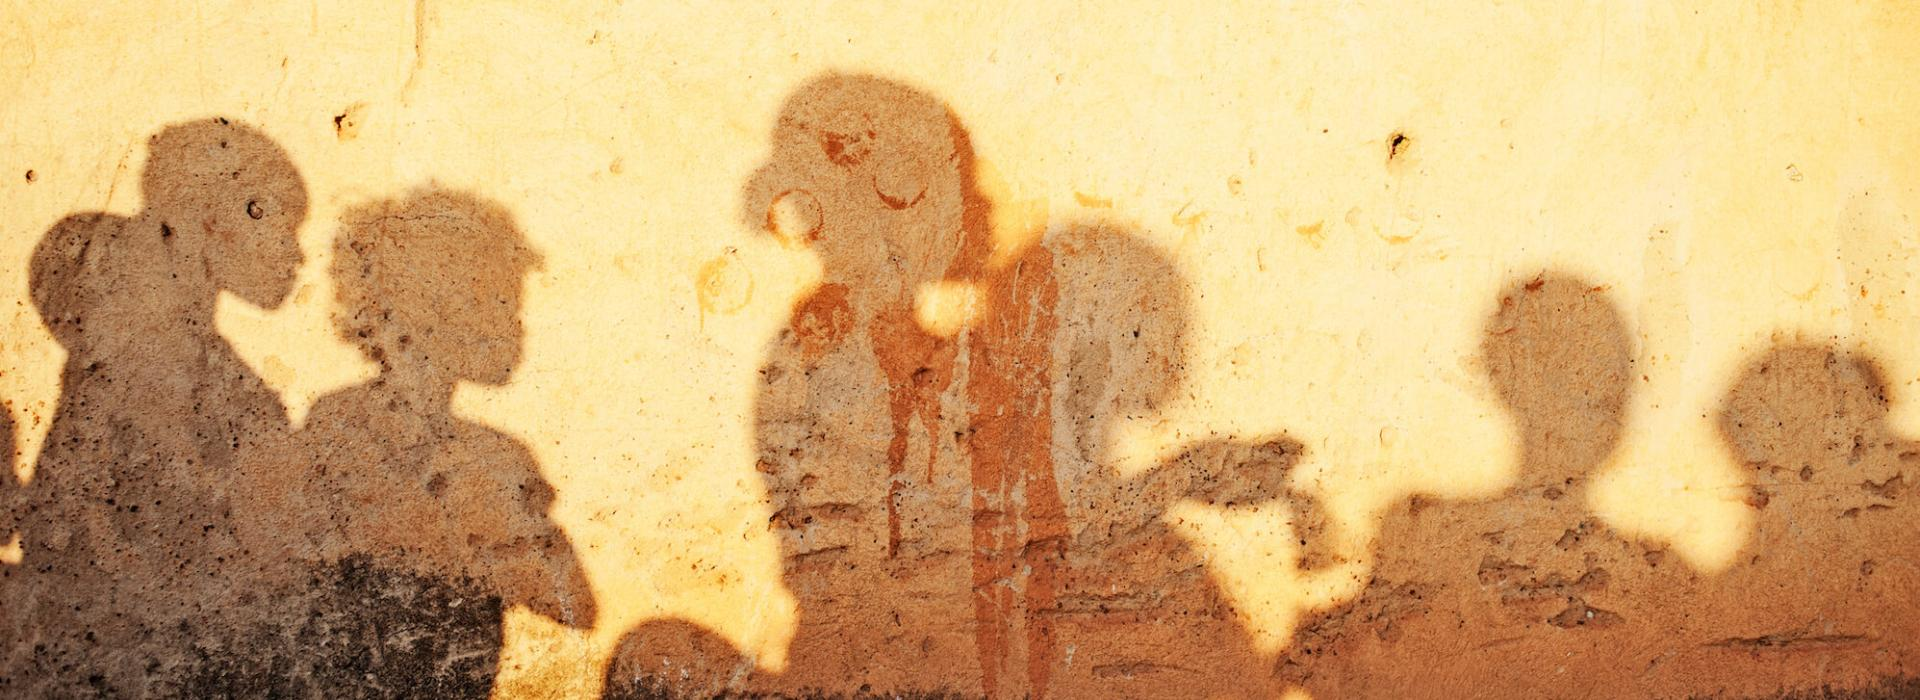 Group of children's shadows on a yellow-beige mud or plaster wall.